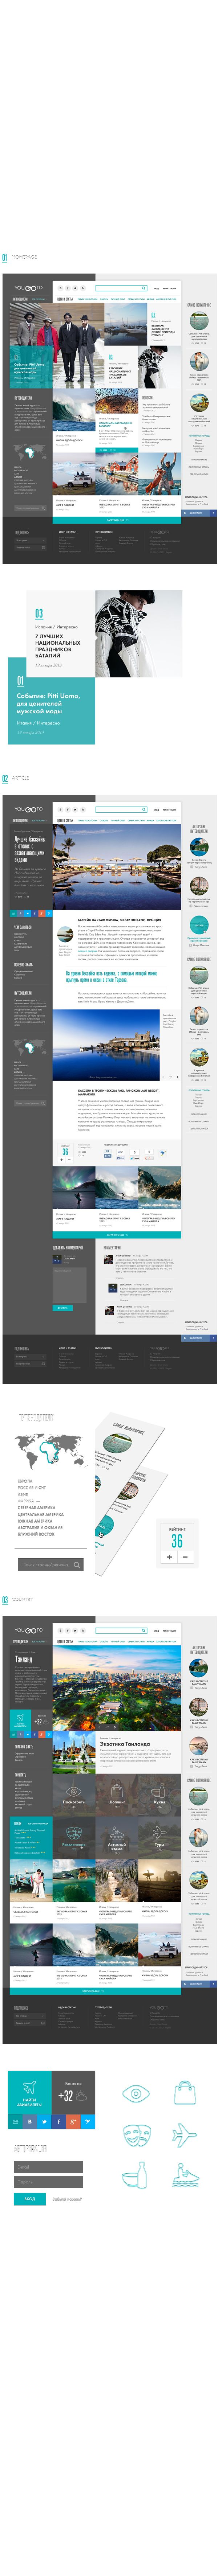 Yougoto by Great Simple, via Behance